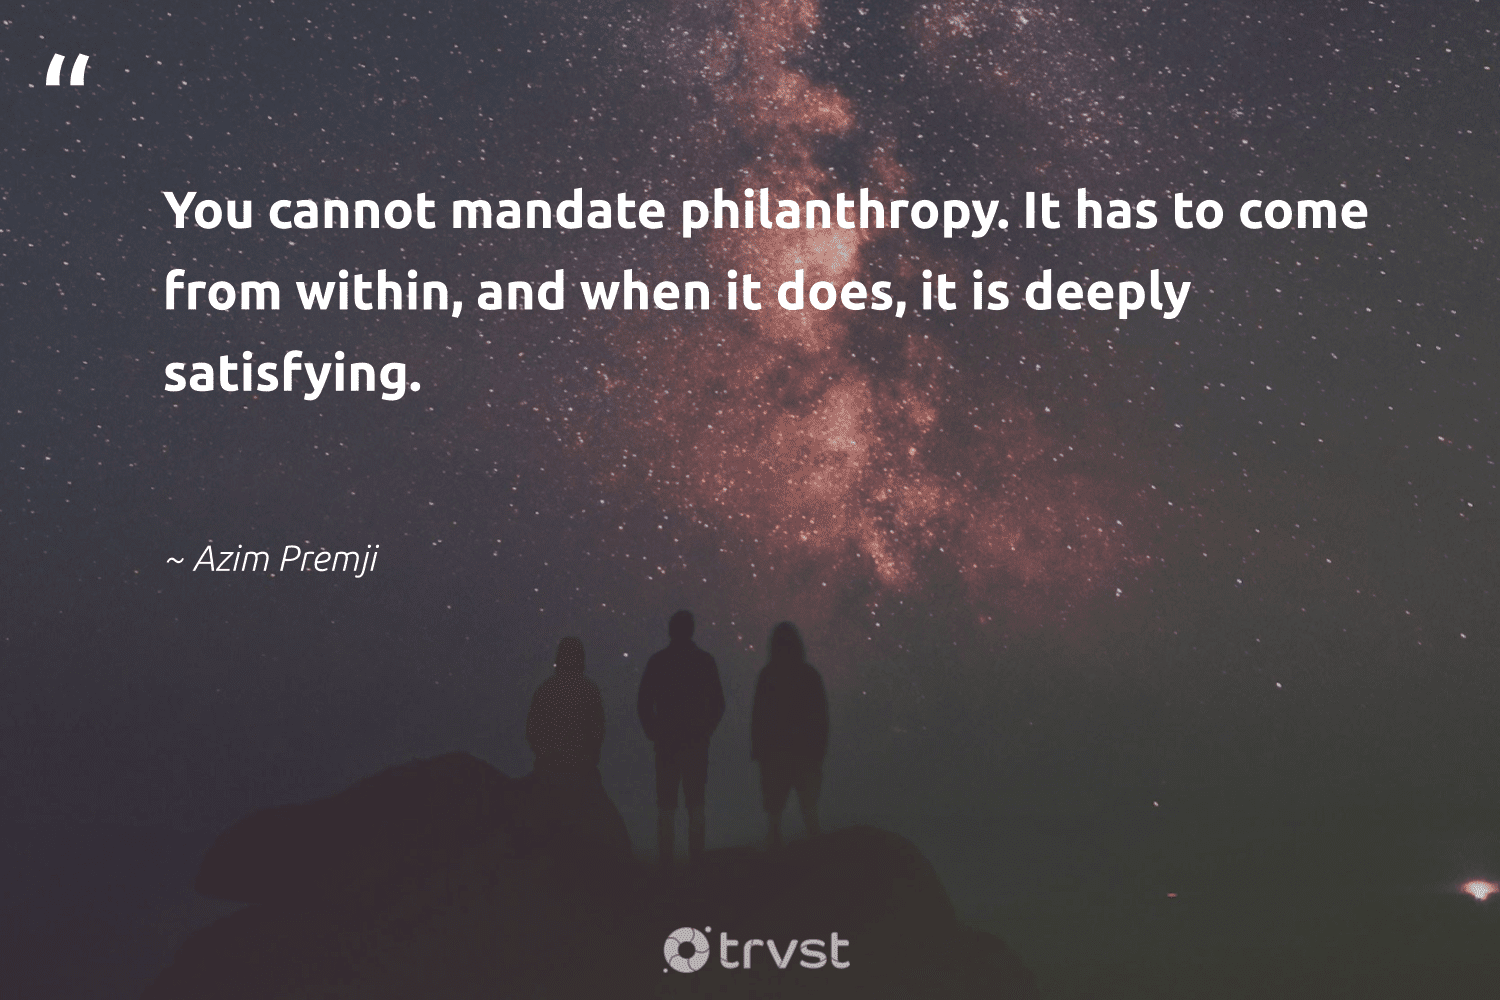 """""""You cannot mandate philanthropy. It has to come from within, and when it does, it is deeply satisfying.""""  - Azim Premji #trvst #quotes #philanthropy #philanthropic #itscooltobekind #changemakers #dotherightthing #togetherwecan #giveforthefuture #socialimpact #collectiveaction #beinspired"""